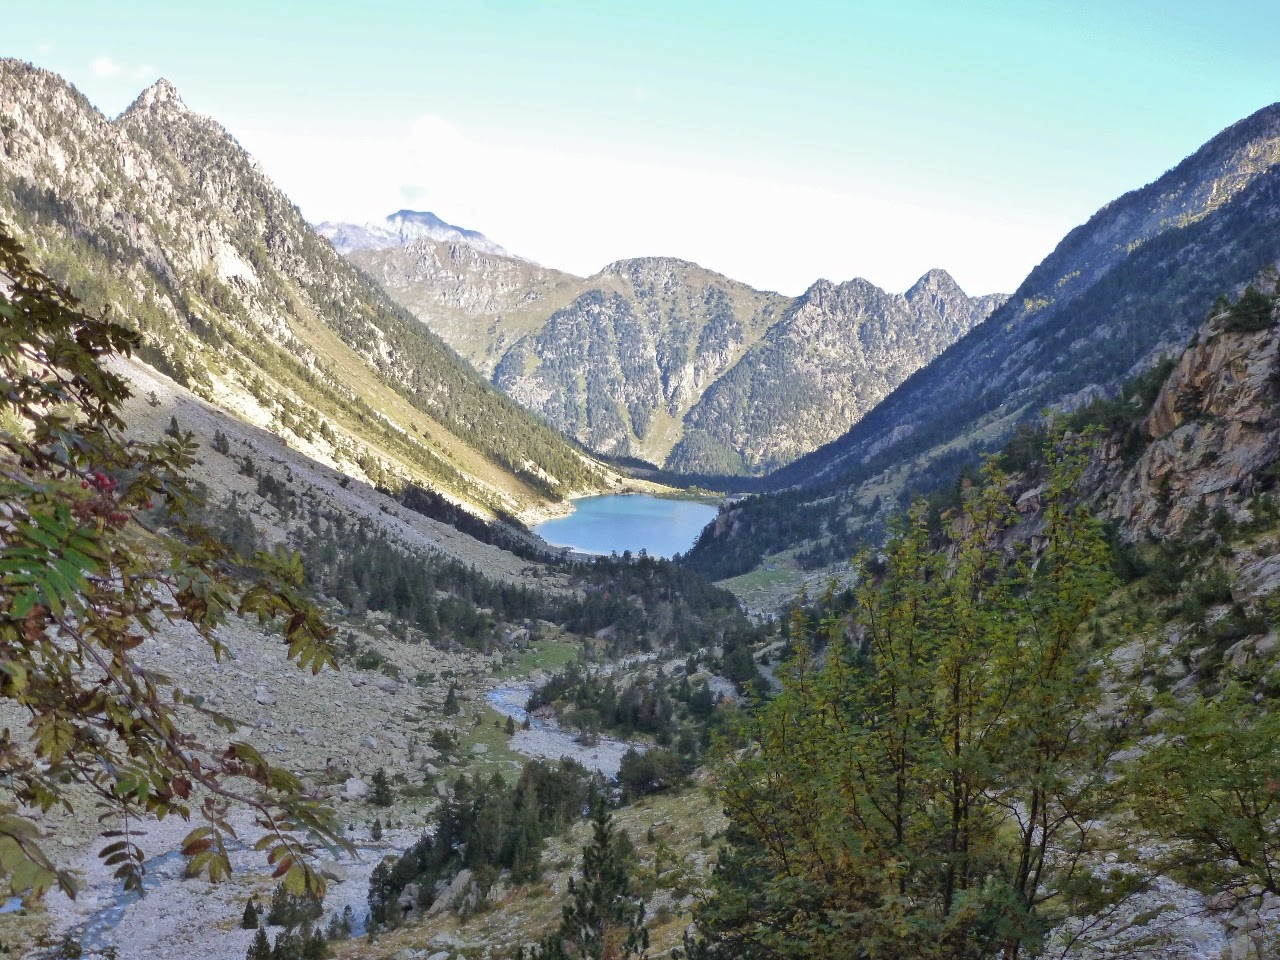 View down valley to the Lac de Gaube